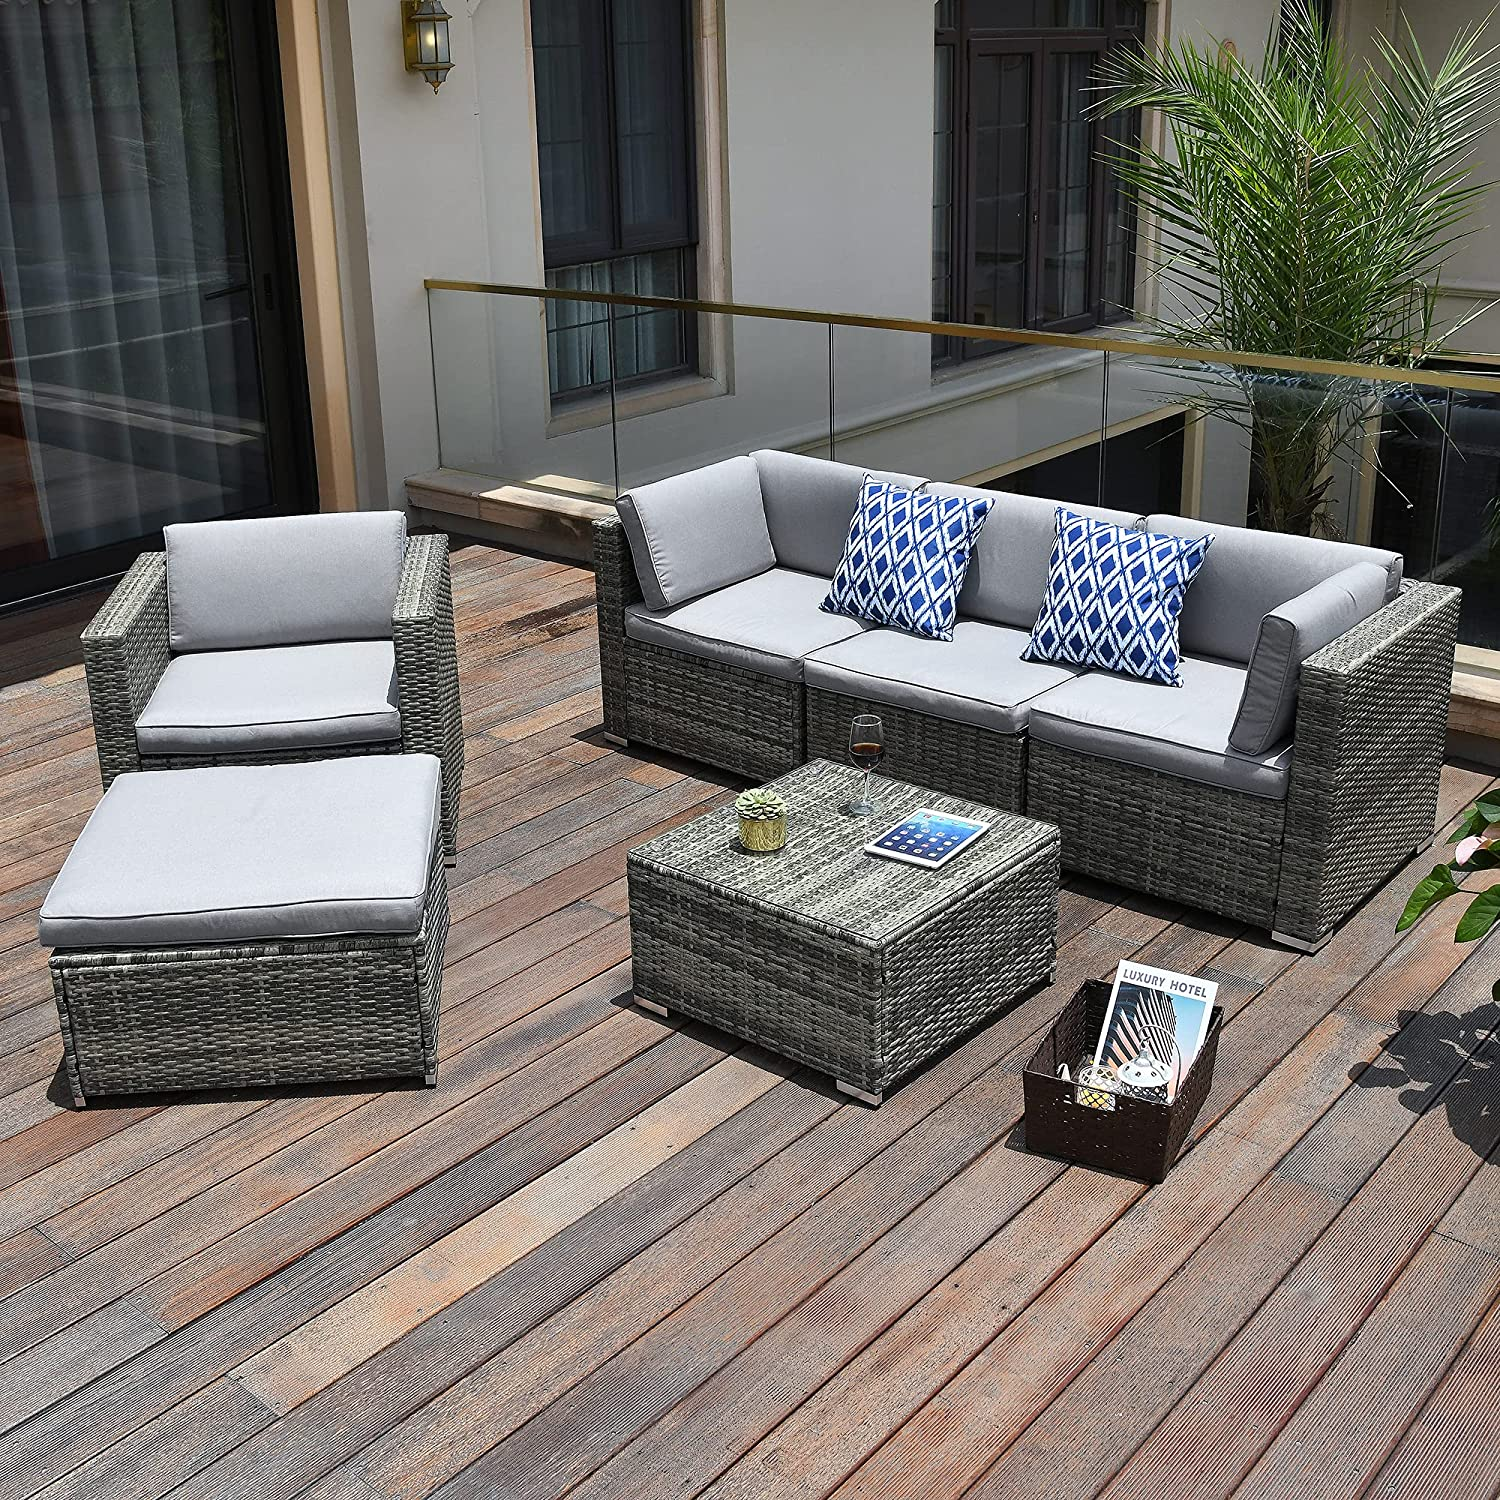 YITAHOME 6 Pieces Patio Furniture Set, Outdoor Sectional Sofa PE Rattan Wicker Conversation Set Outside Couch with Ottoman, Table and Cushions for Porch Lawn Garden Backyard, Grey